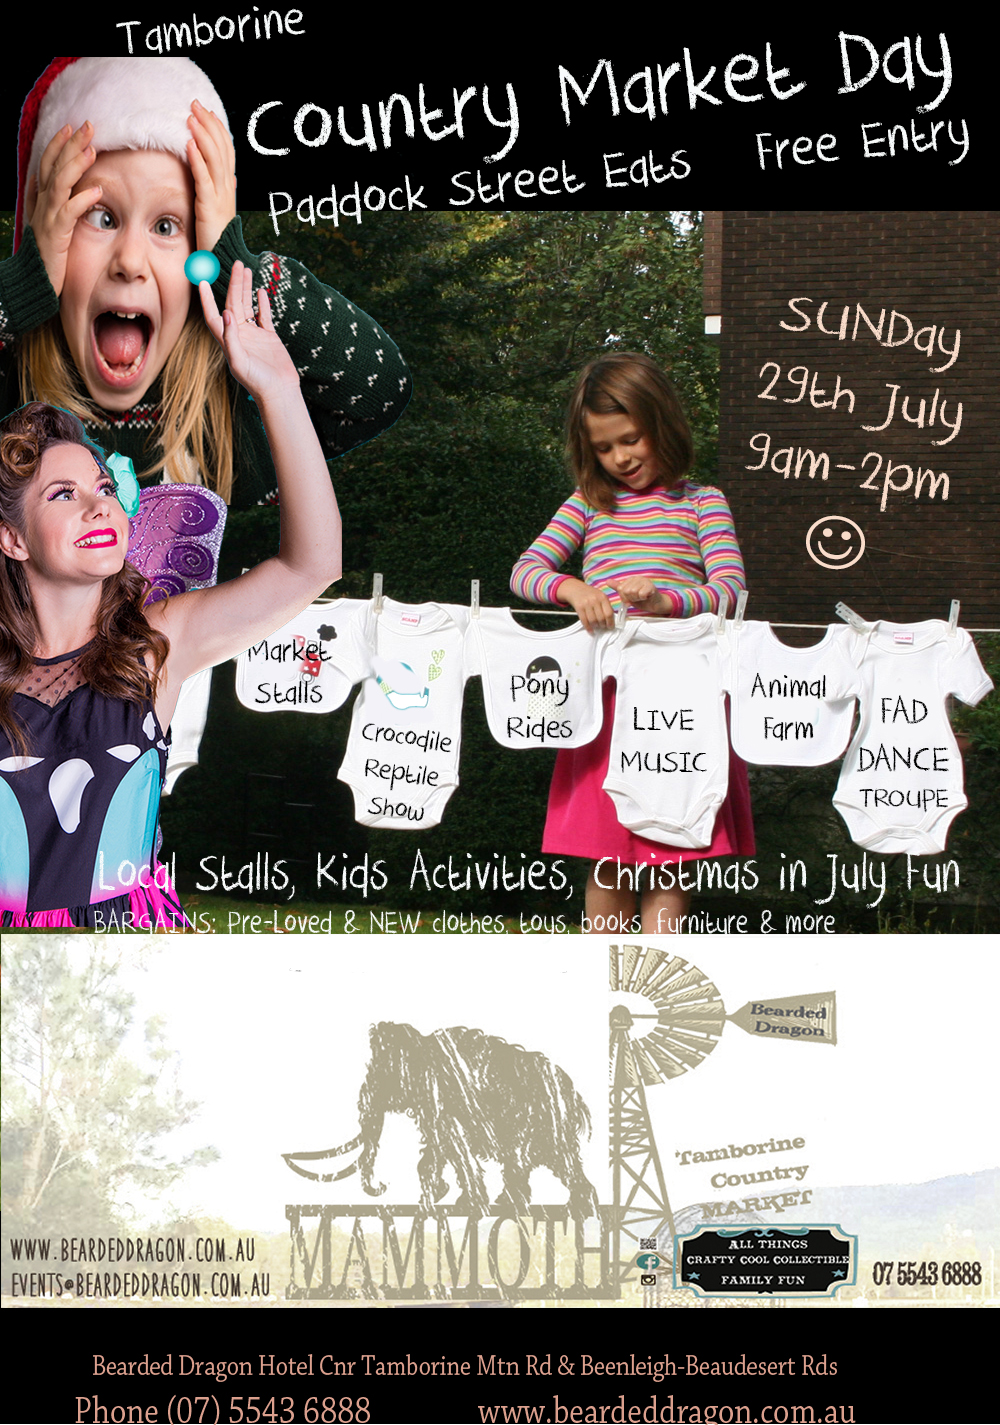 Annual Tamborine Mammoth Country Market